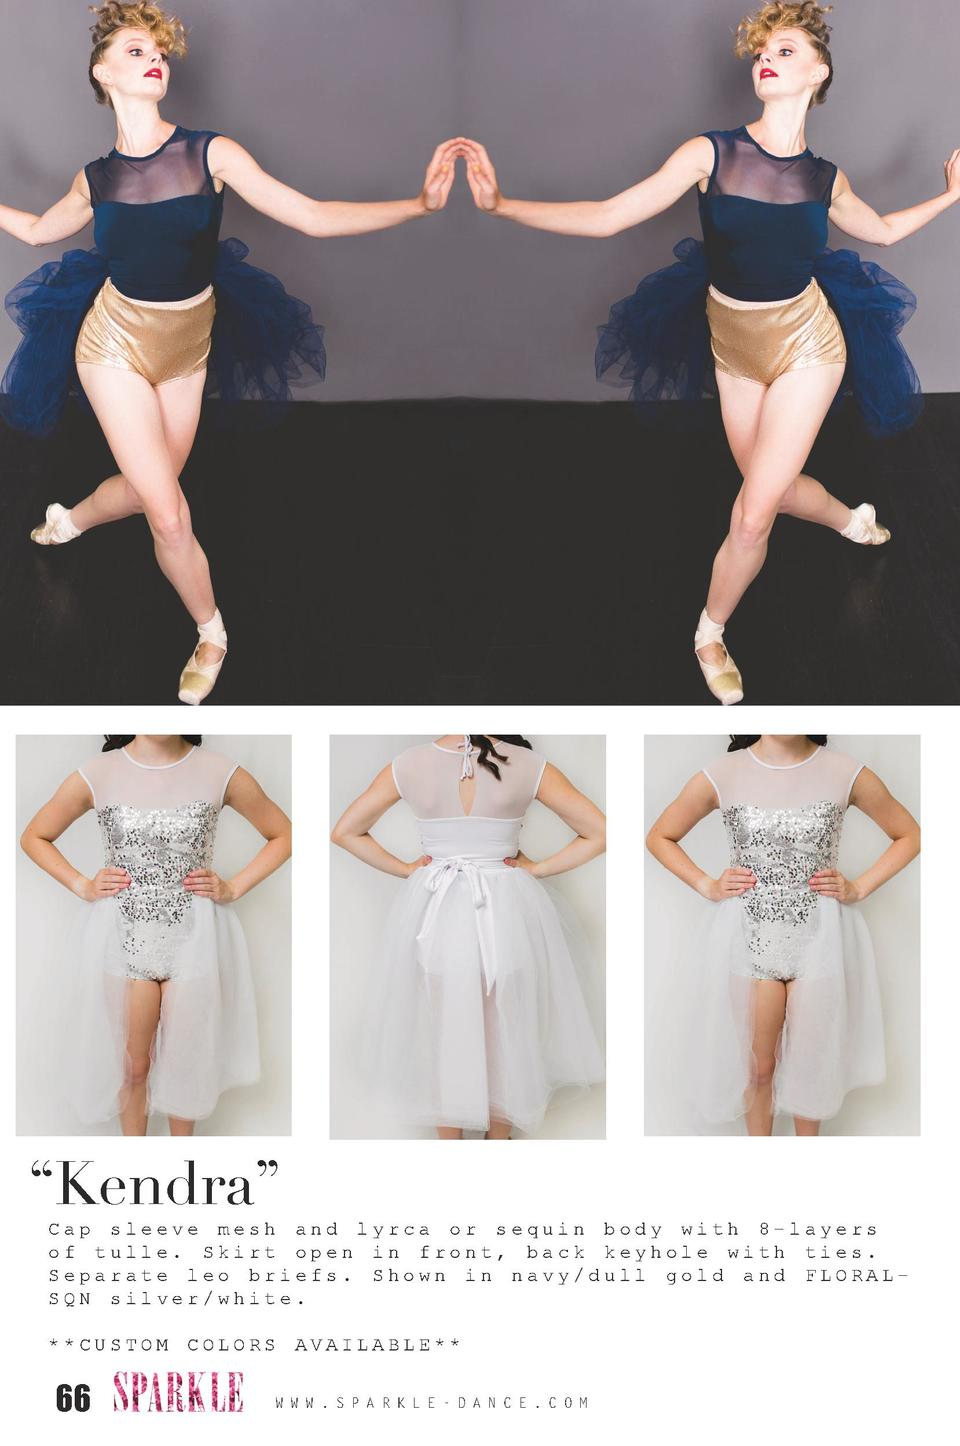 Kendra     Cap sleeve mesh and lyrca or sequin body with 8-layers of tulle. Skirt open in front, back keyhole with ties...